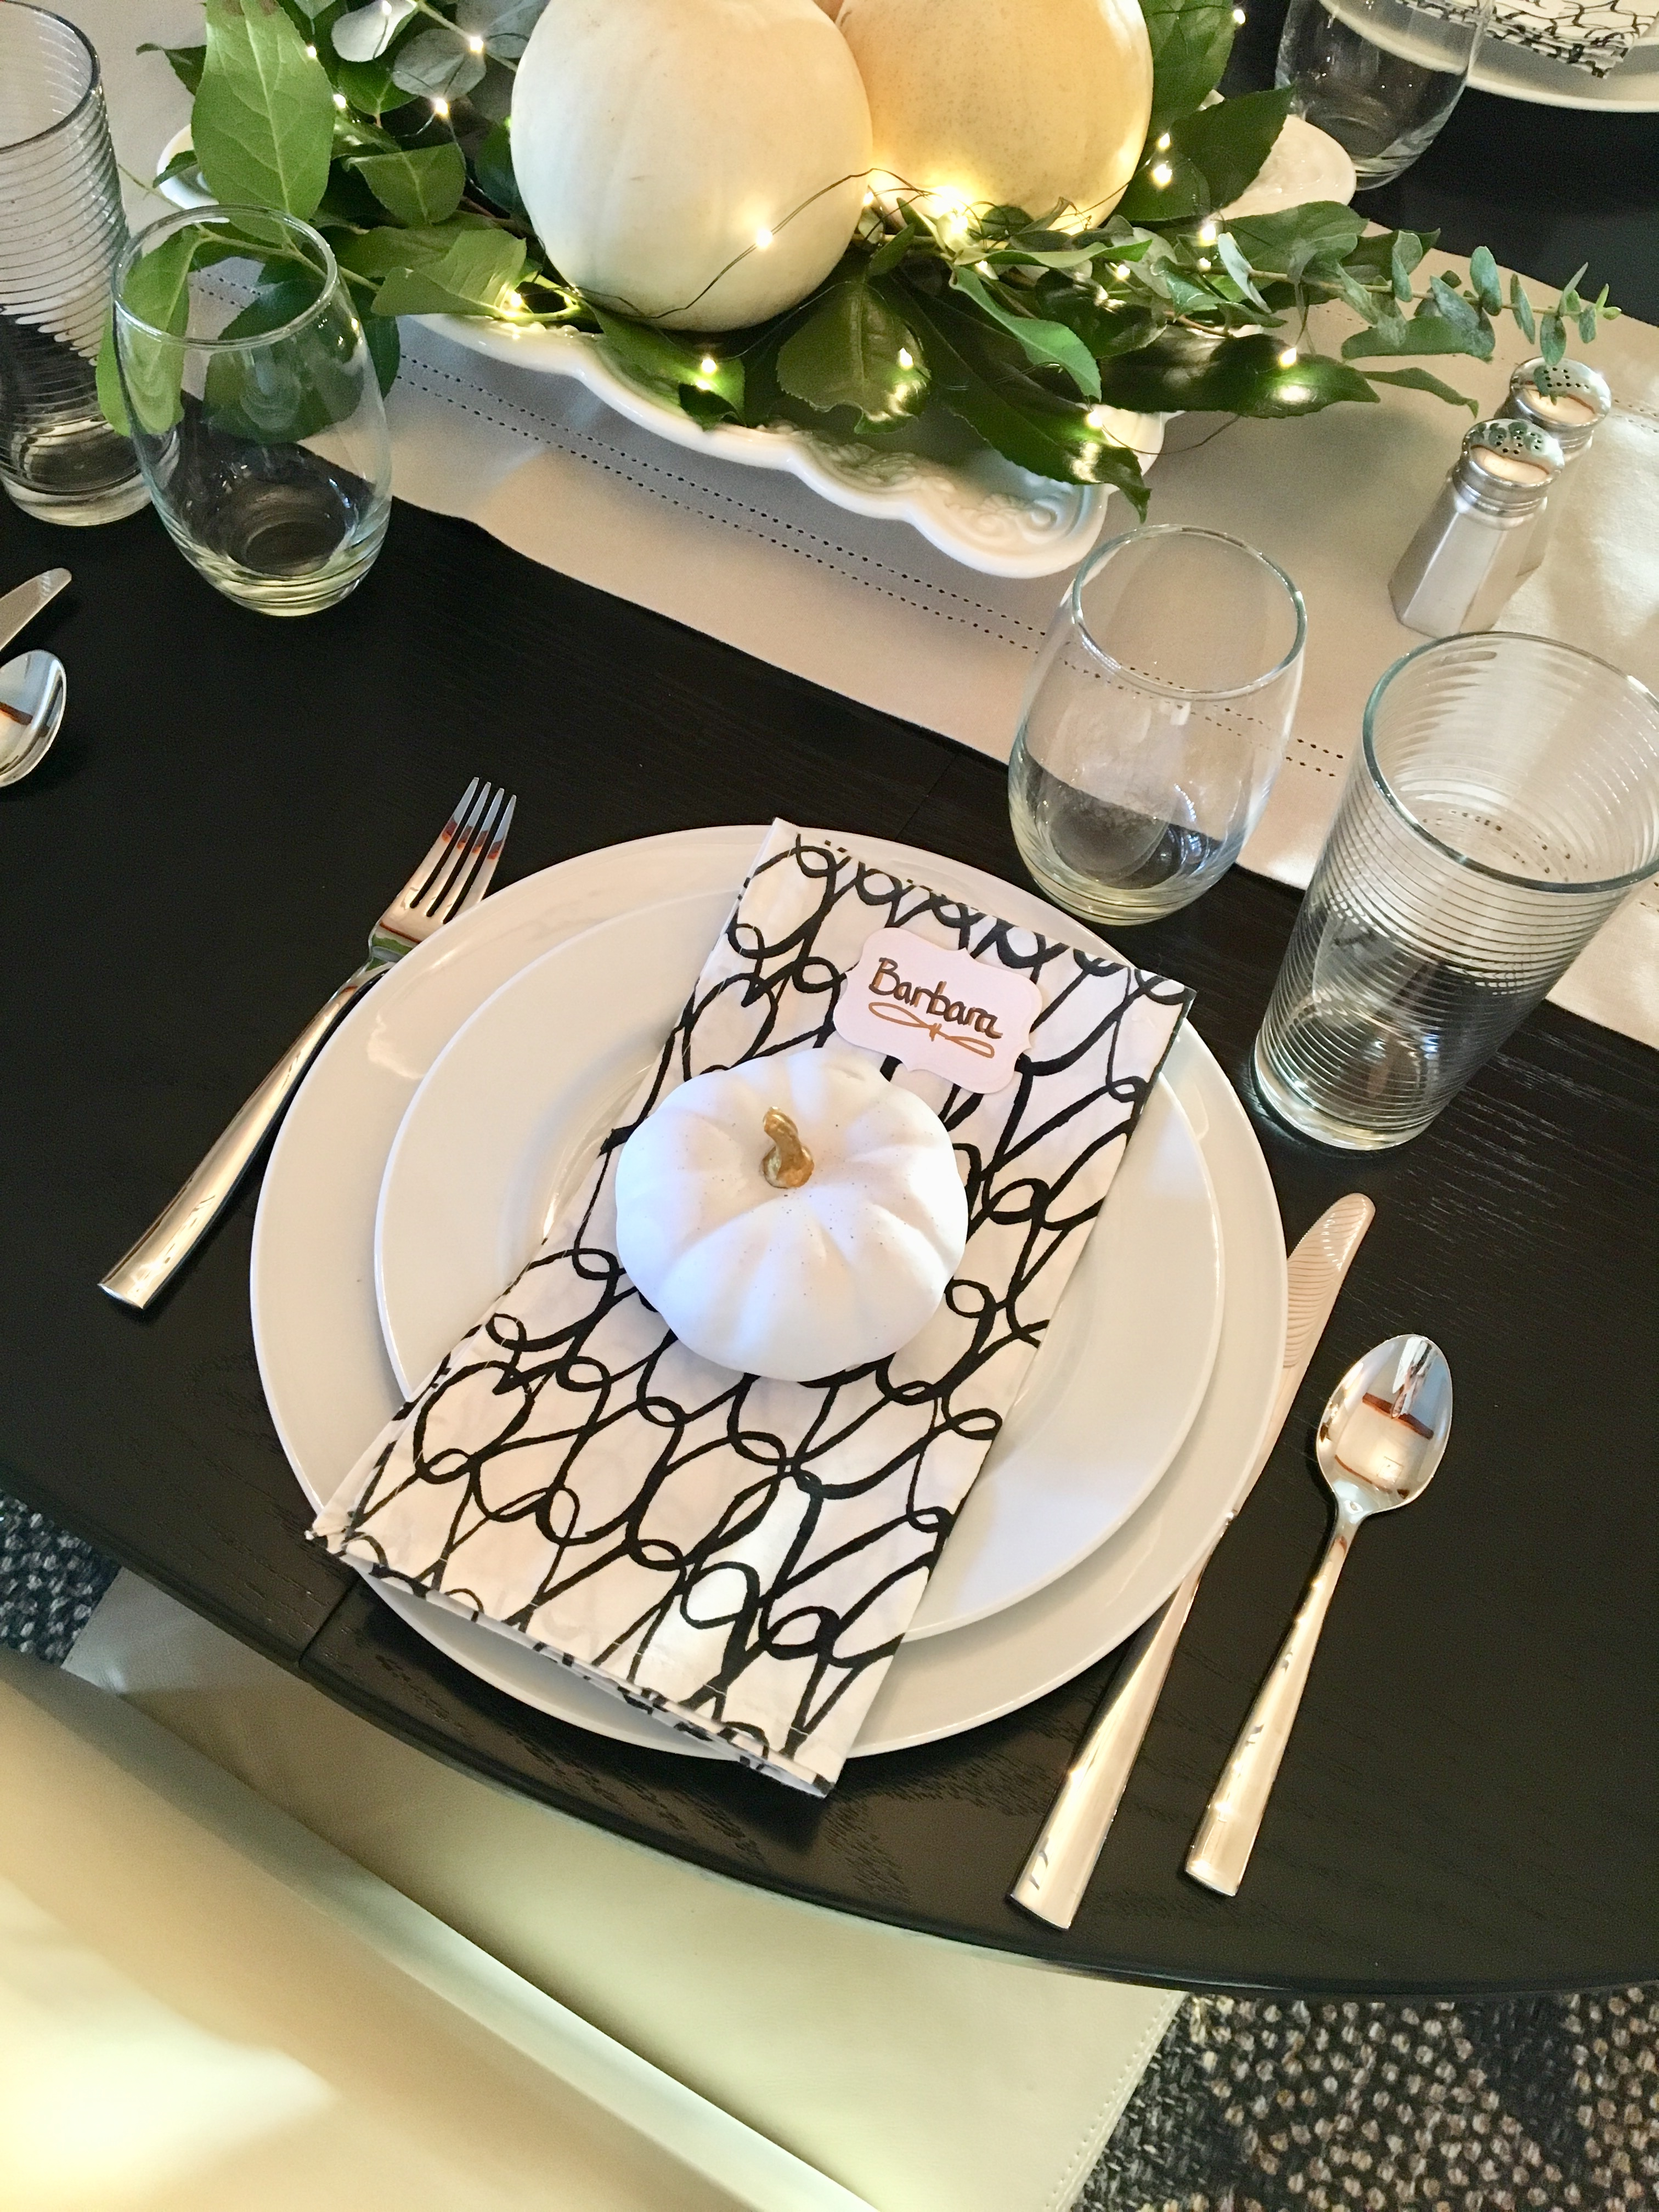 Thanksgiving 2017 table place setting.